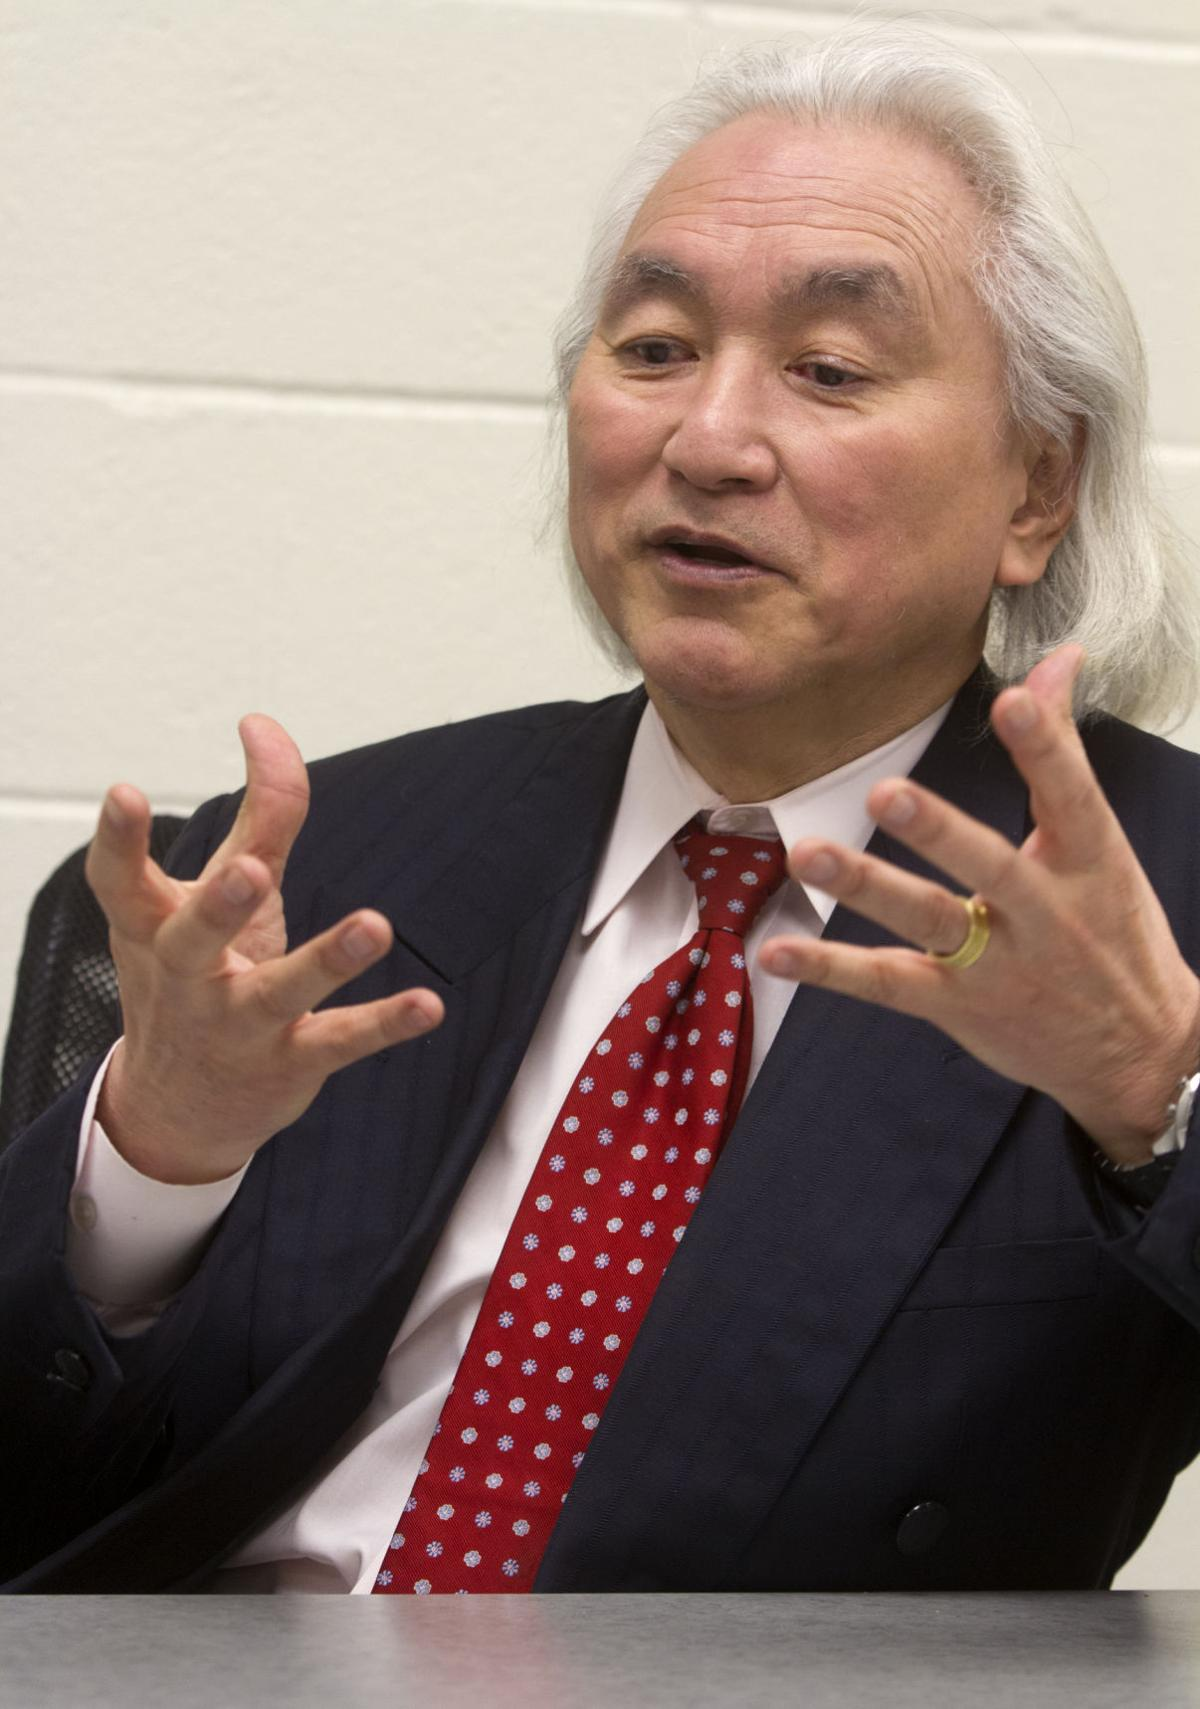 'It's all because of physics': an interview with Michio Kaku